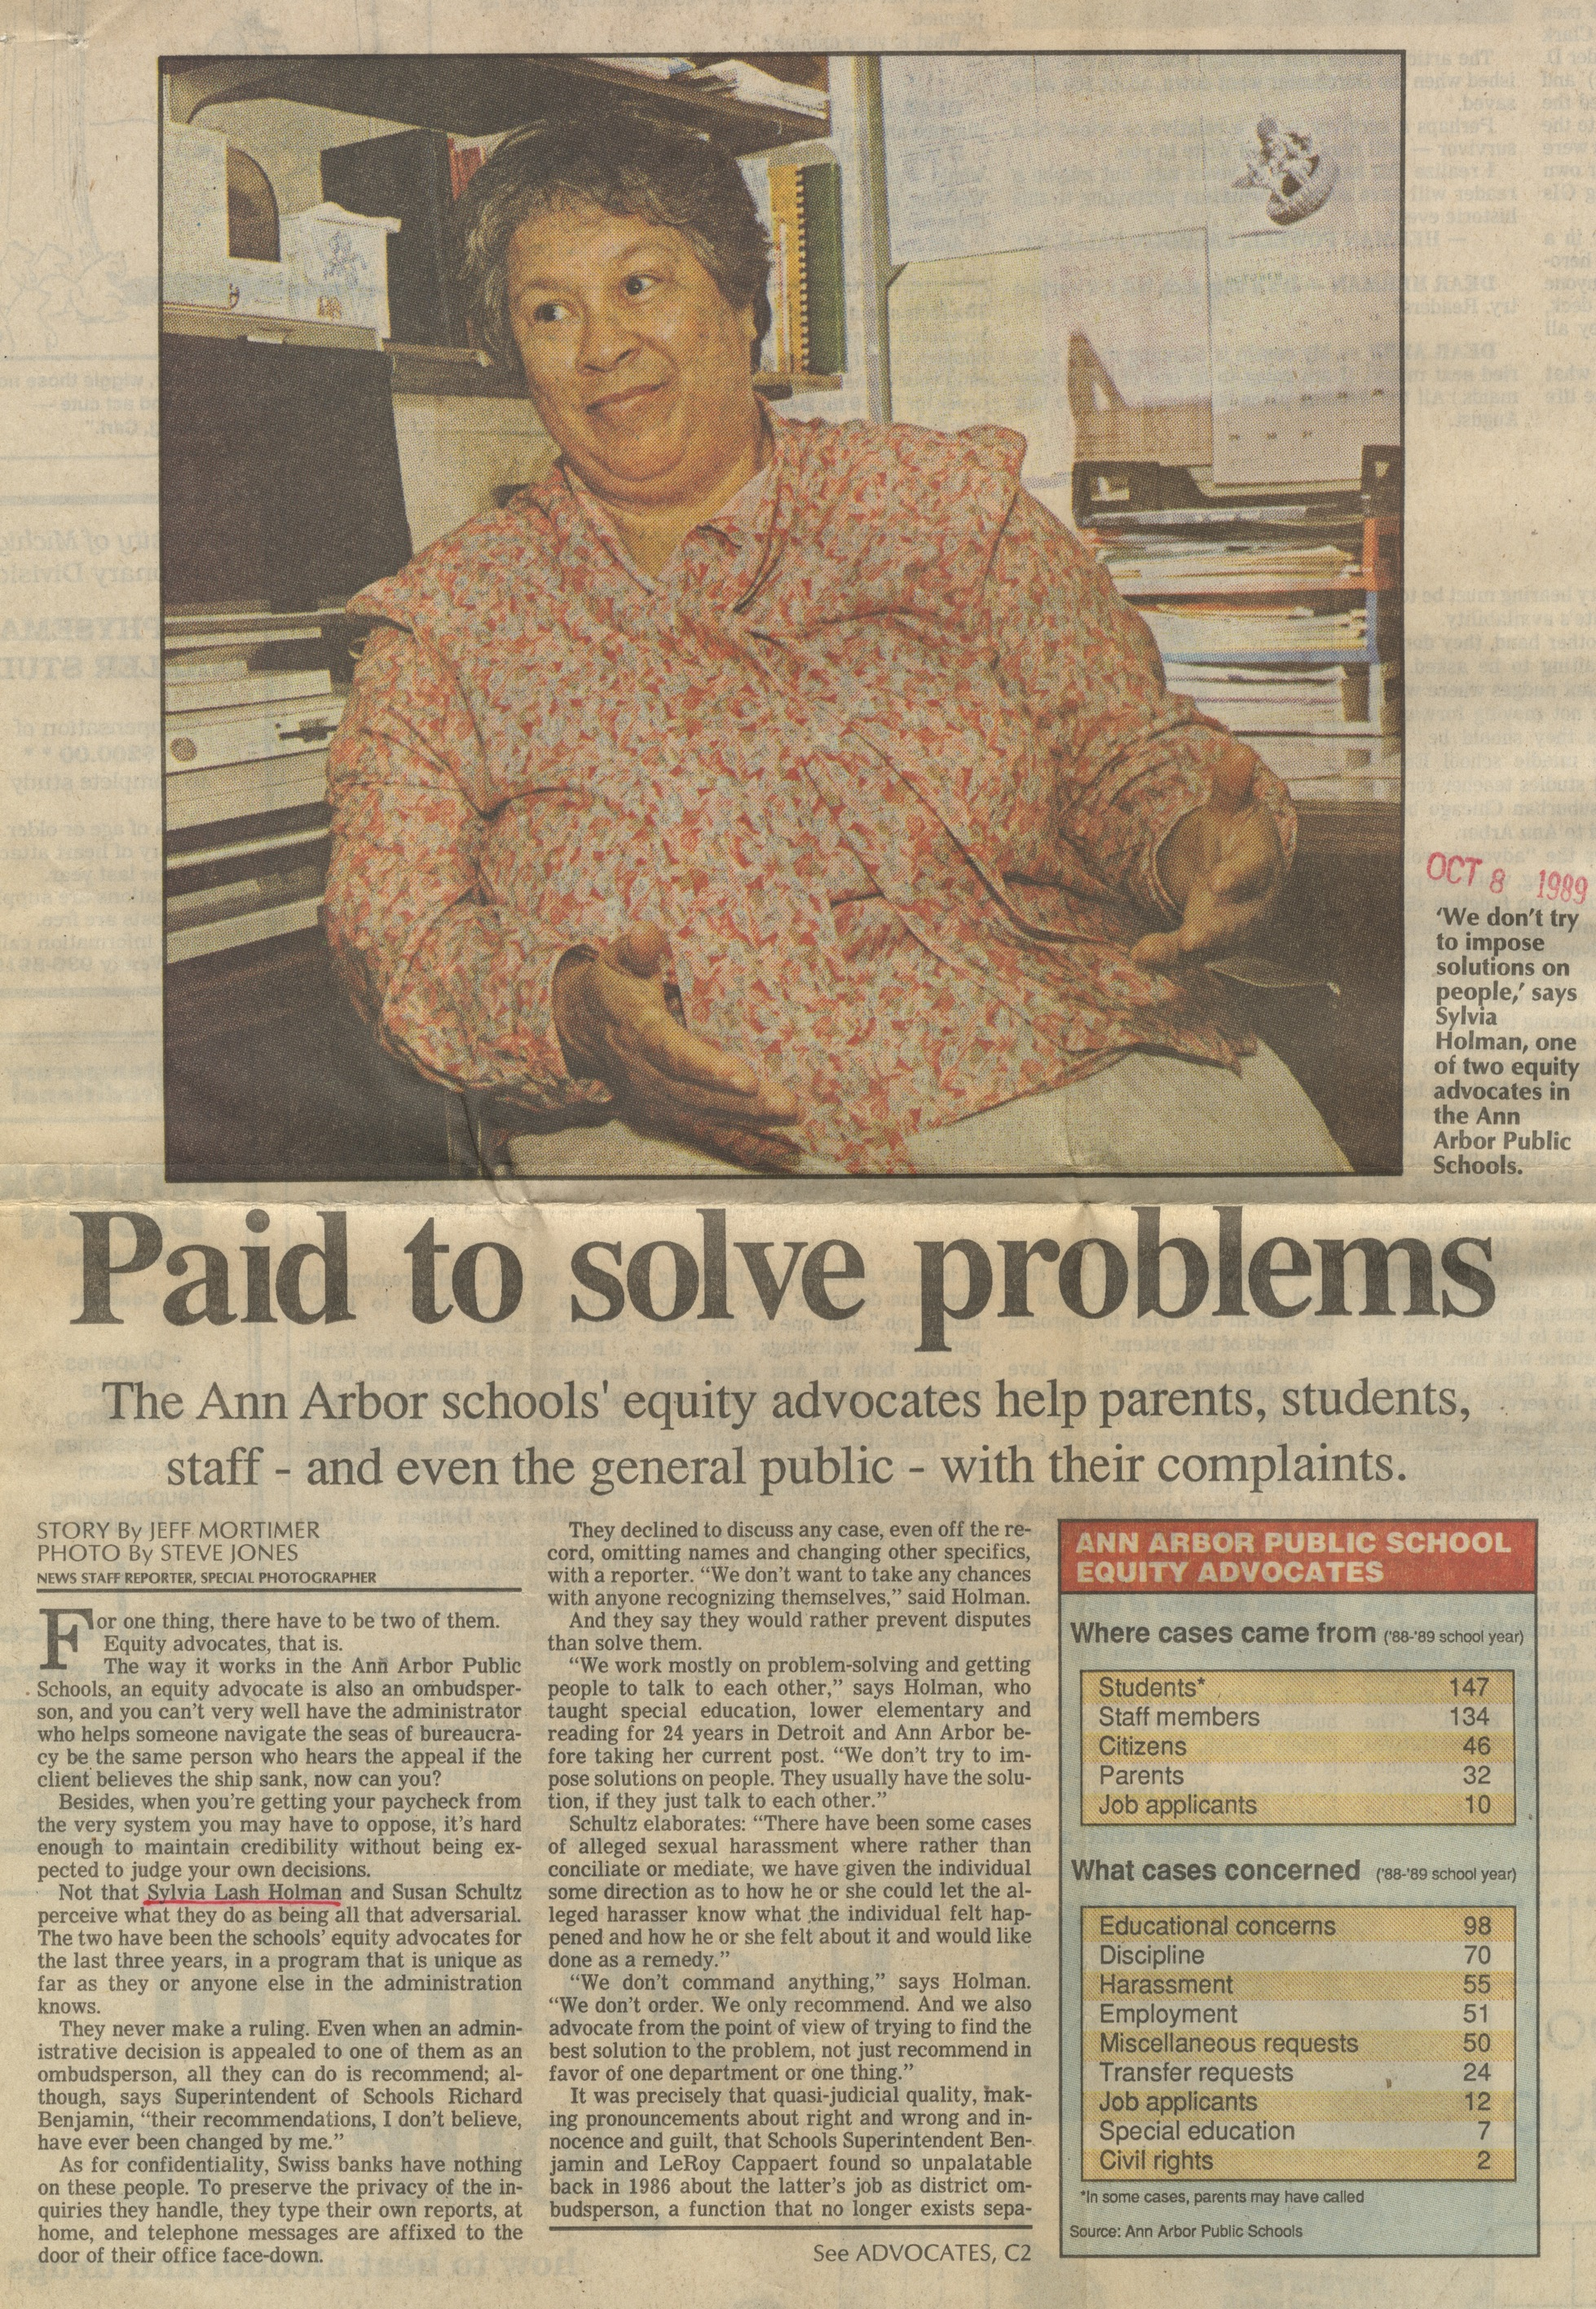 Paid To Solve Problems image